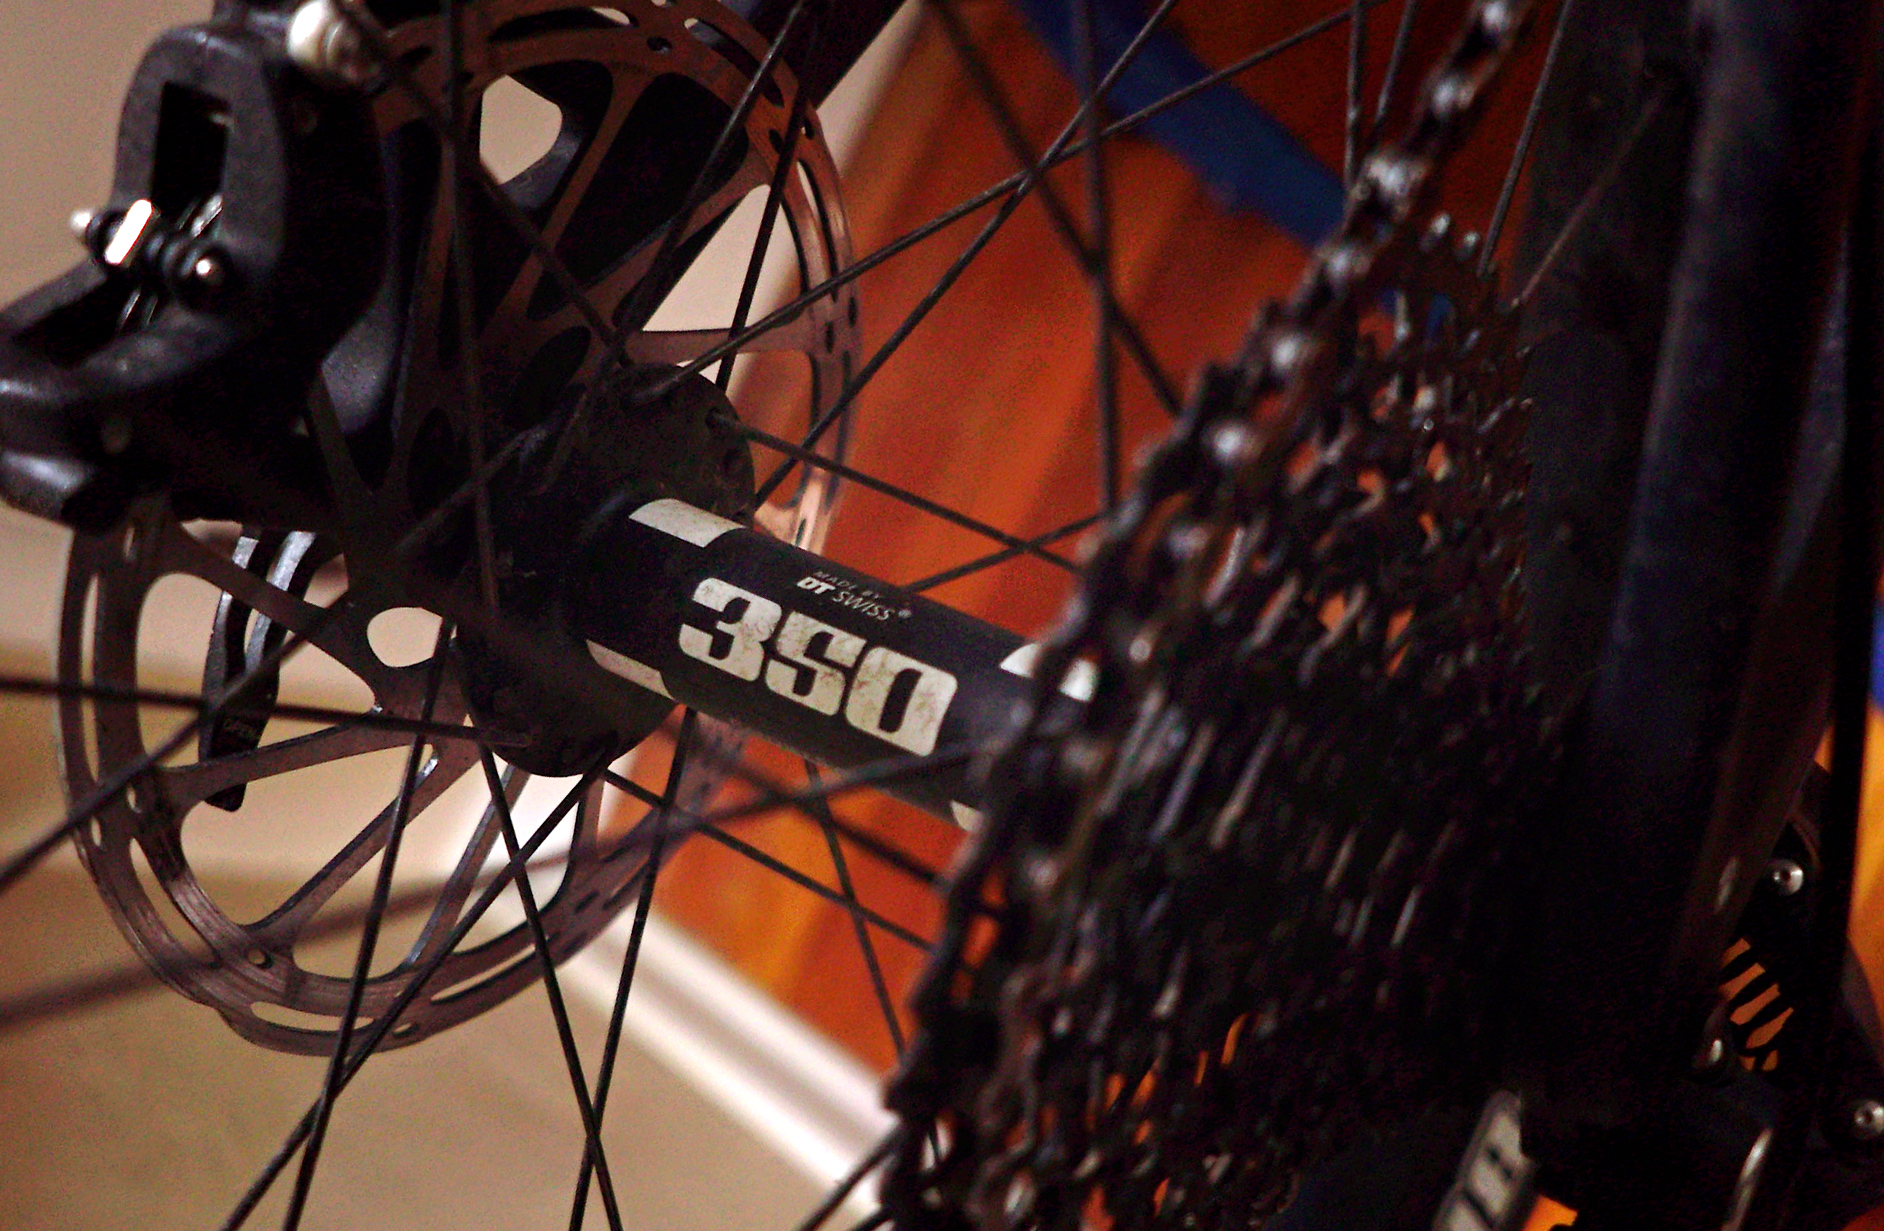 DT Swiss Big Ride 350 - I went with these hubs because they are reliable, competitively priced and easy to rebuild if need be.